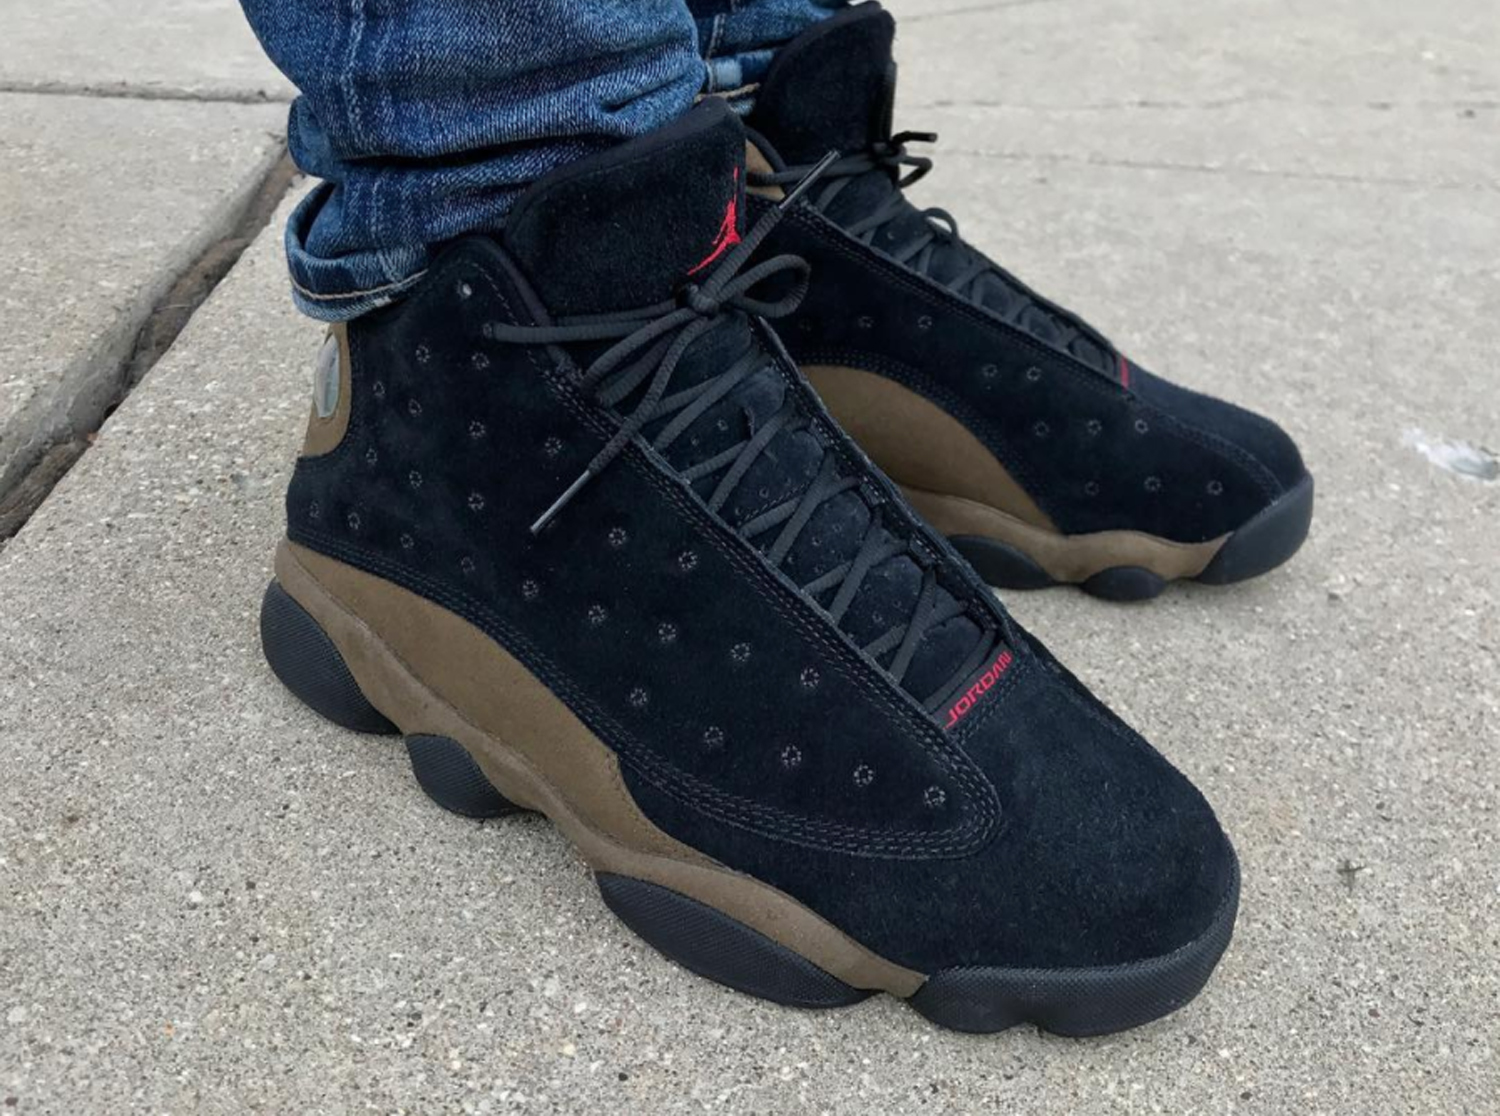 a96f1f4d372be8 air jordan 13 Archives - WearTesters